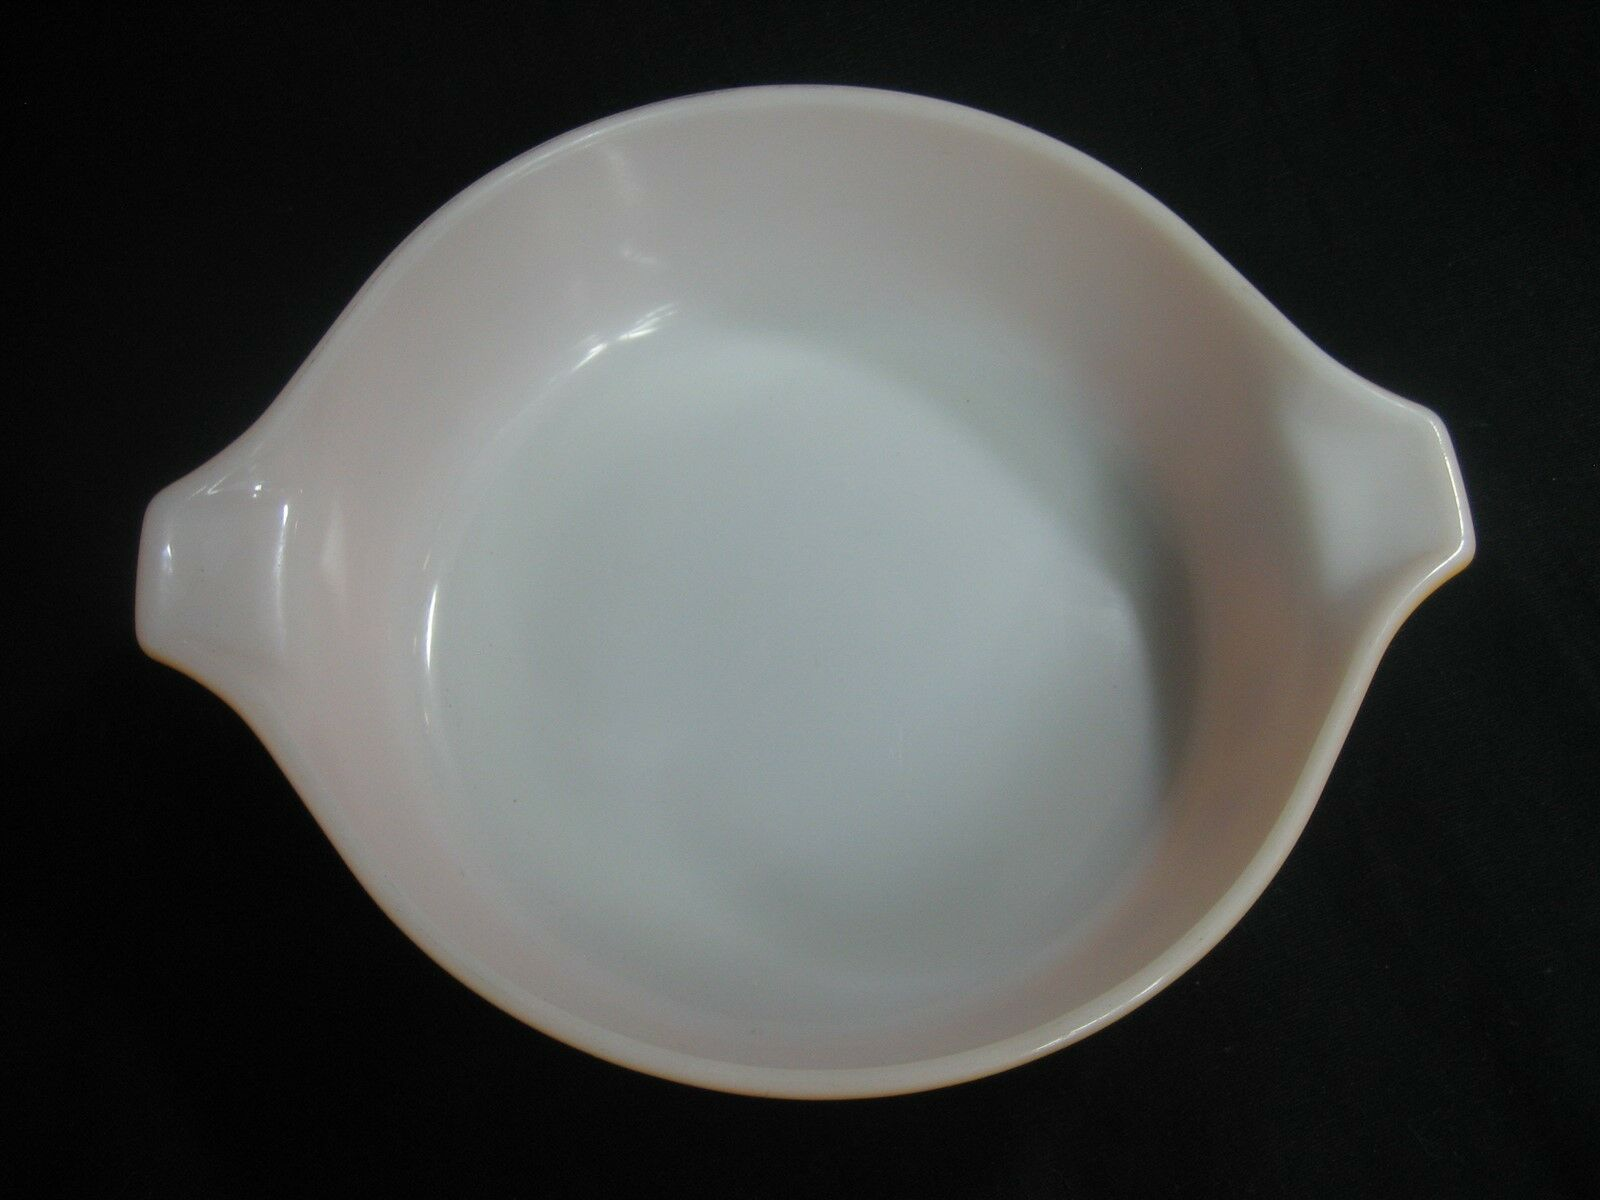 Vintage Pyrex Town and Country Small Casserole Dish #471 - 1 Pint